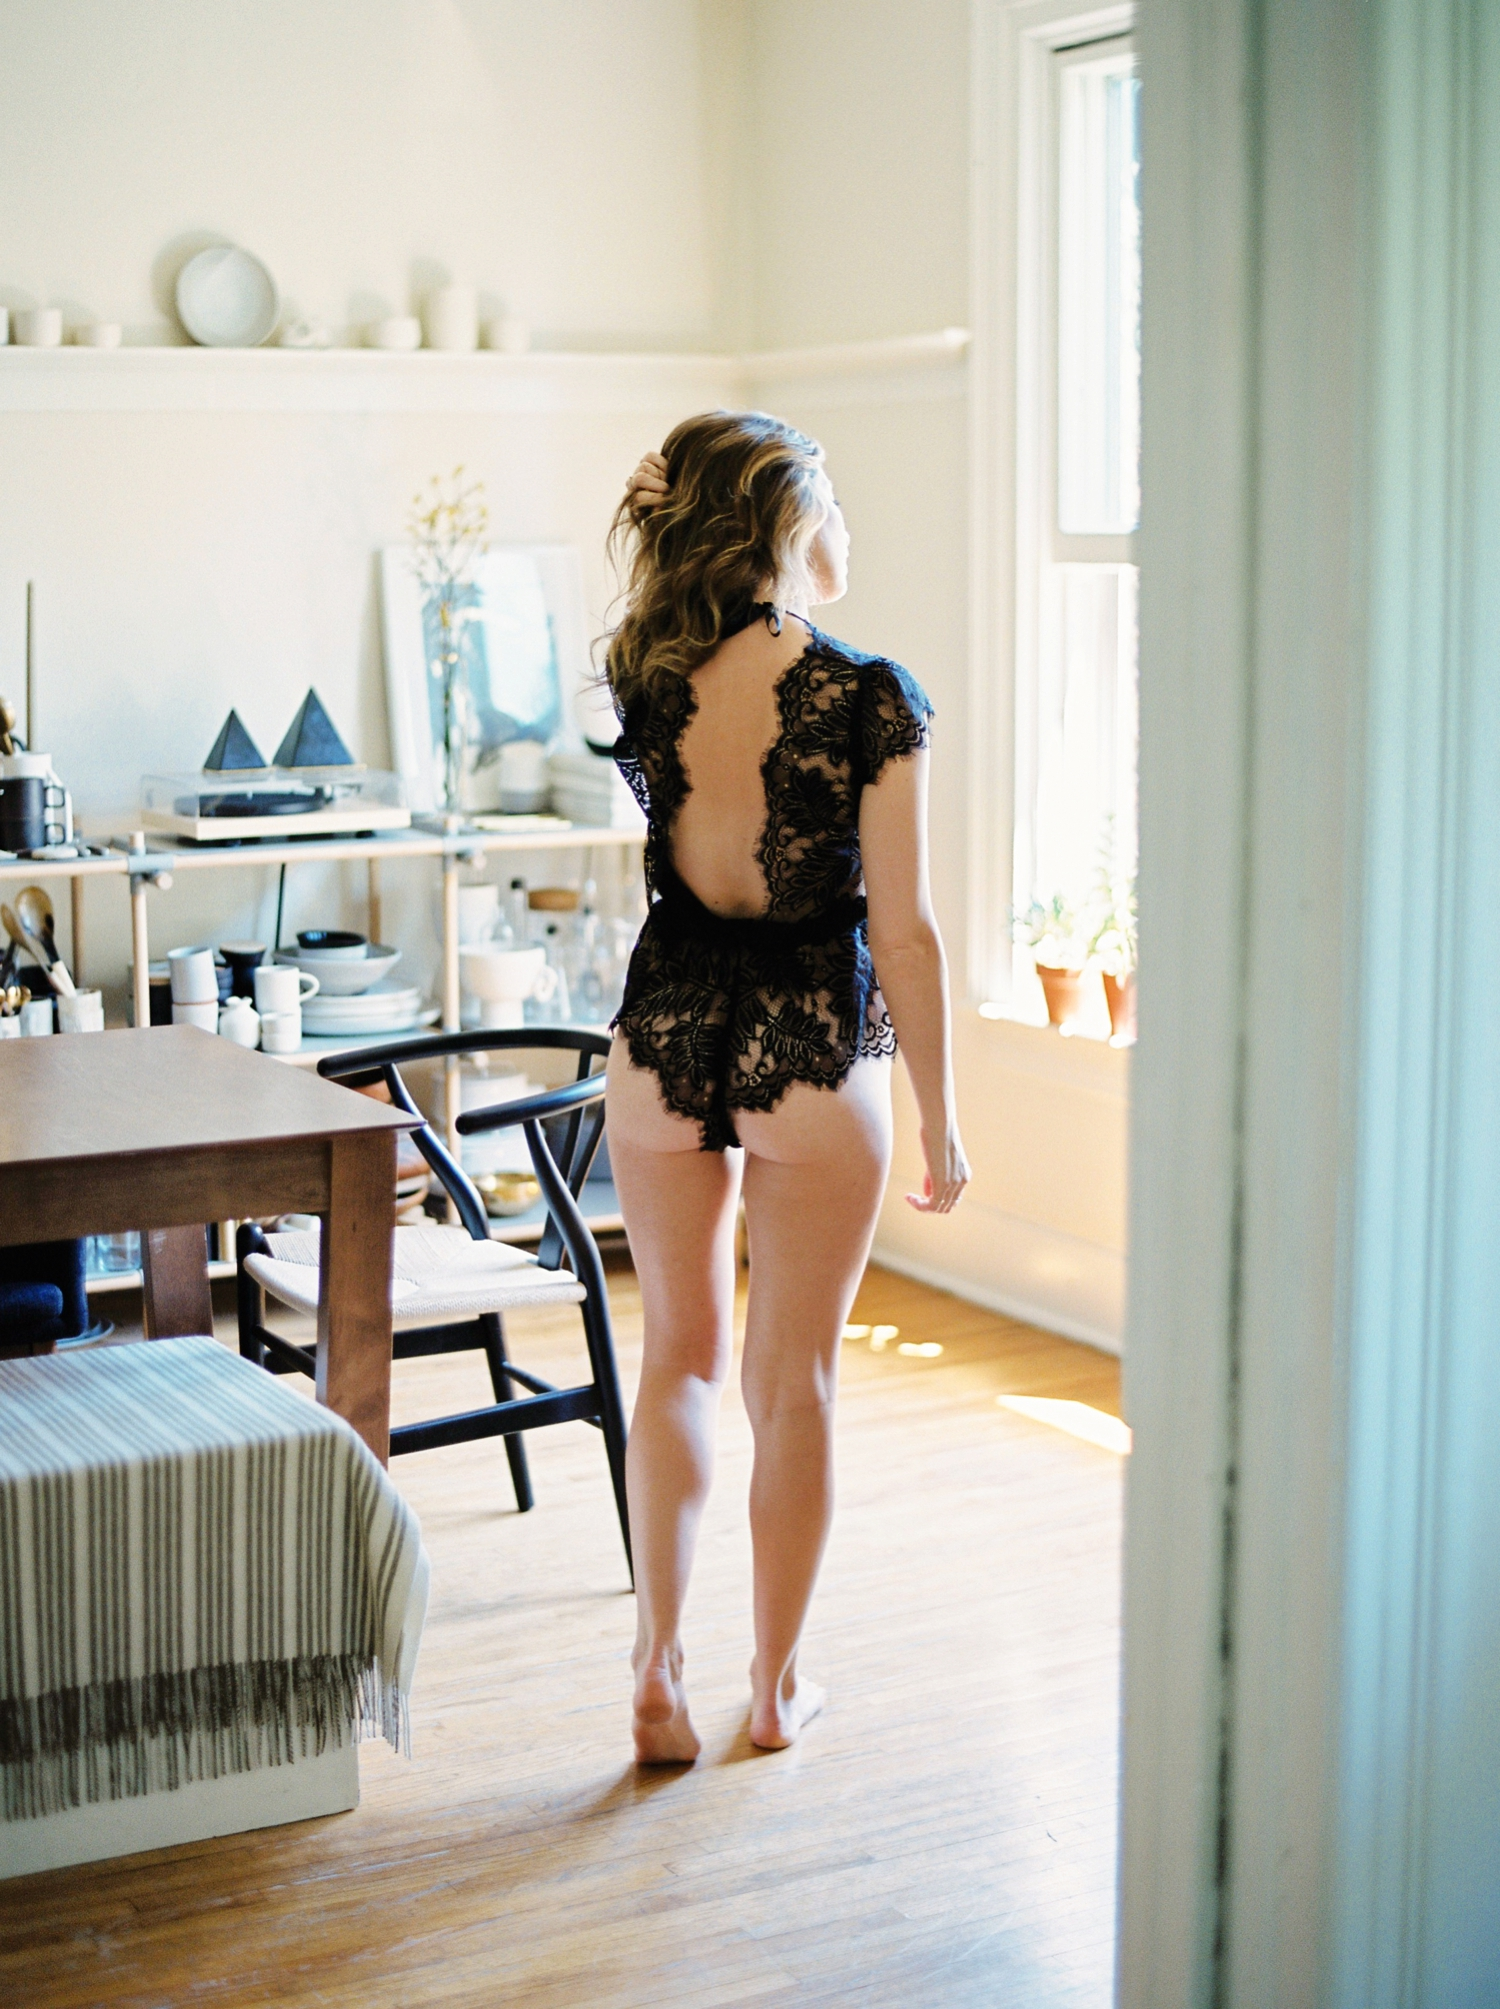 Calgary wedding photographers | fine art film | Justine Milton Photography | lingerie | life set sail | fashion blogger | fashion